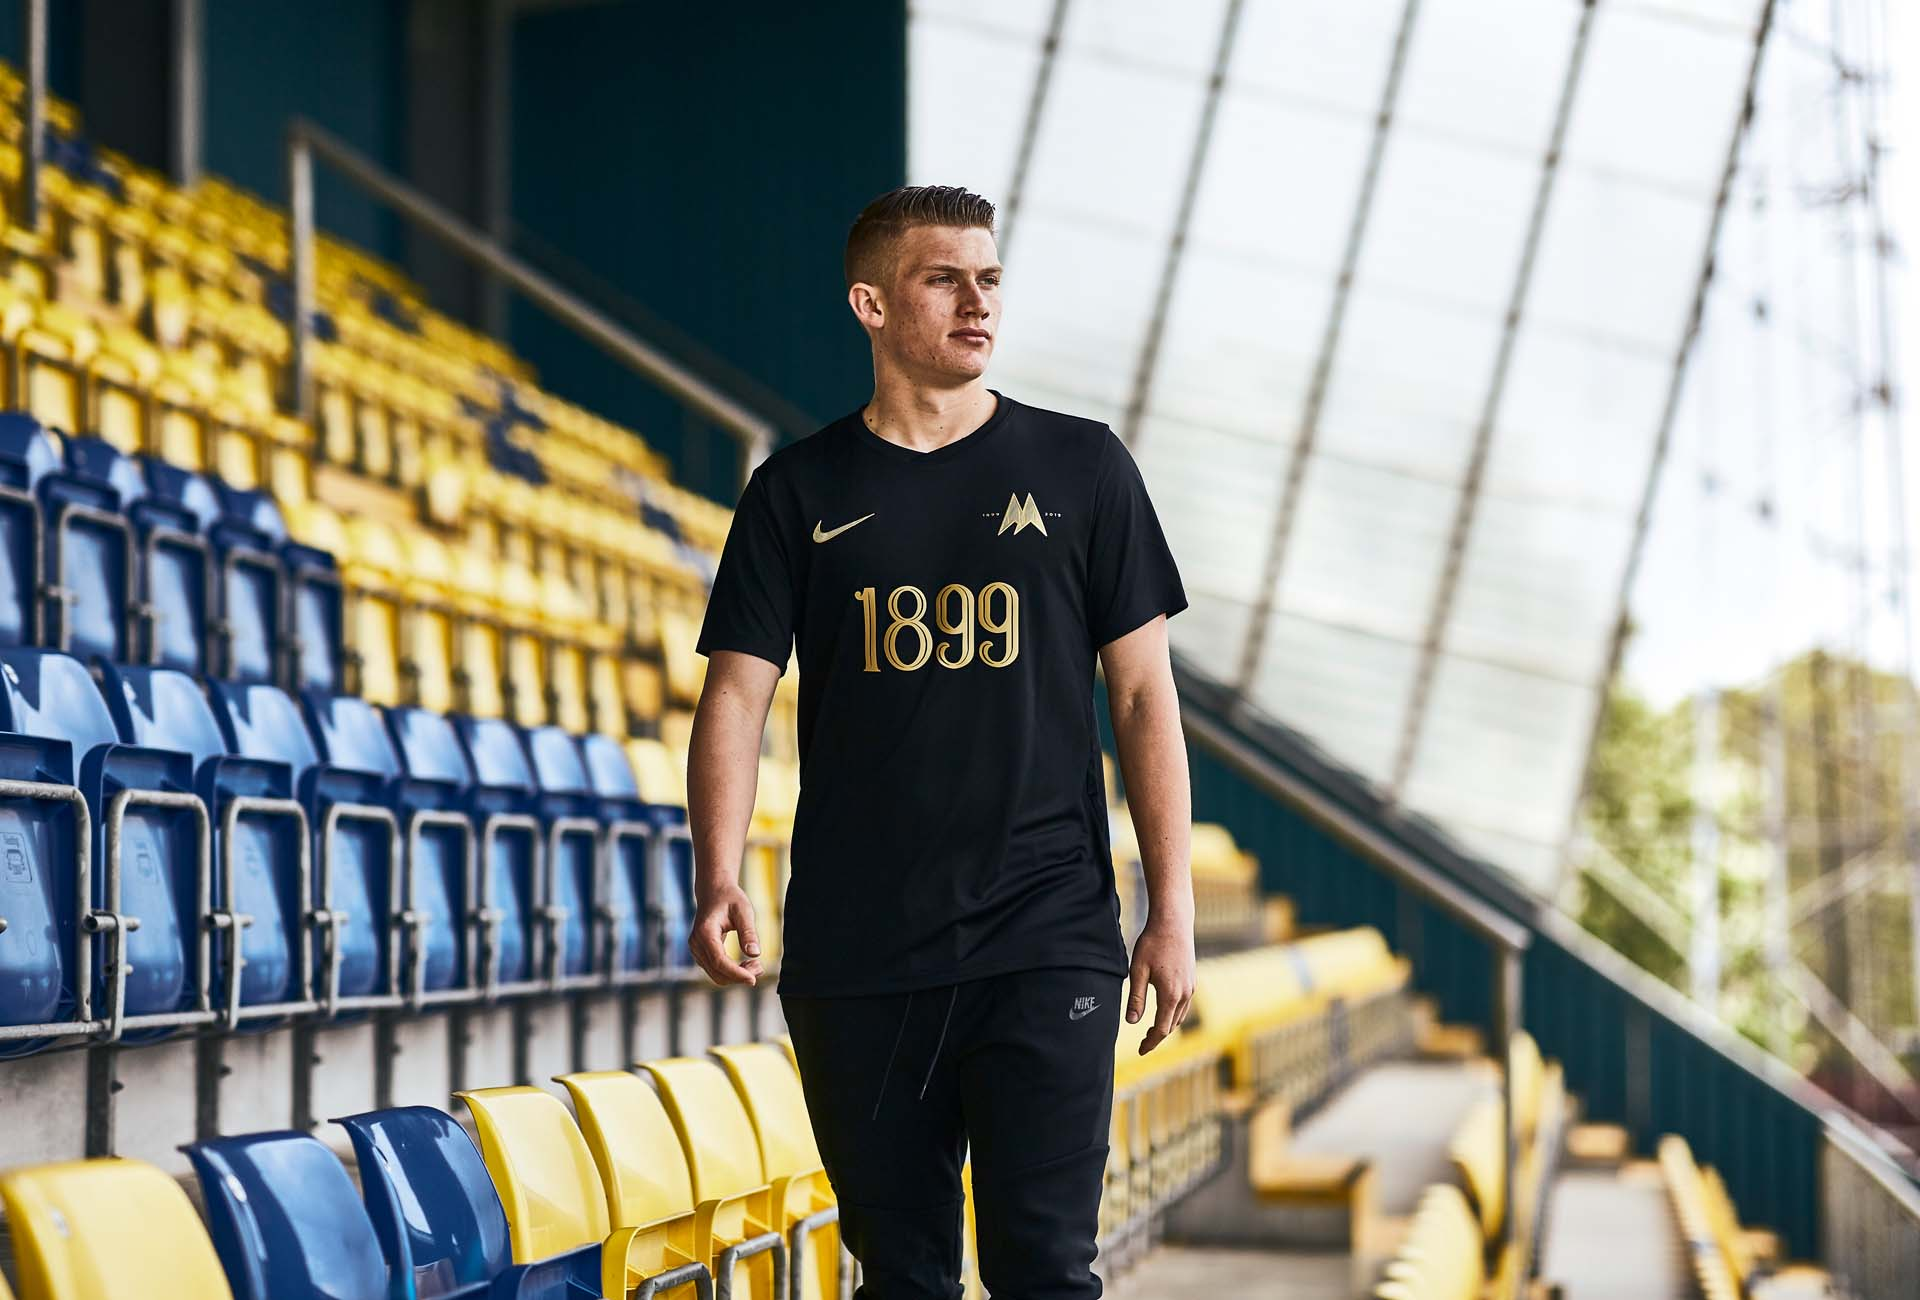 competitive price 99204 4f3e8 Torquay United Launch Stunning Special Edition Anniversary ...